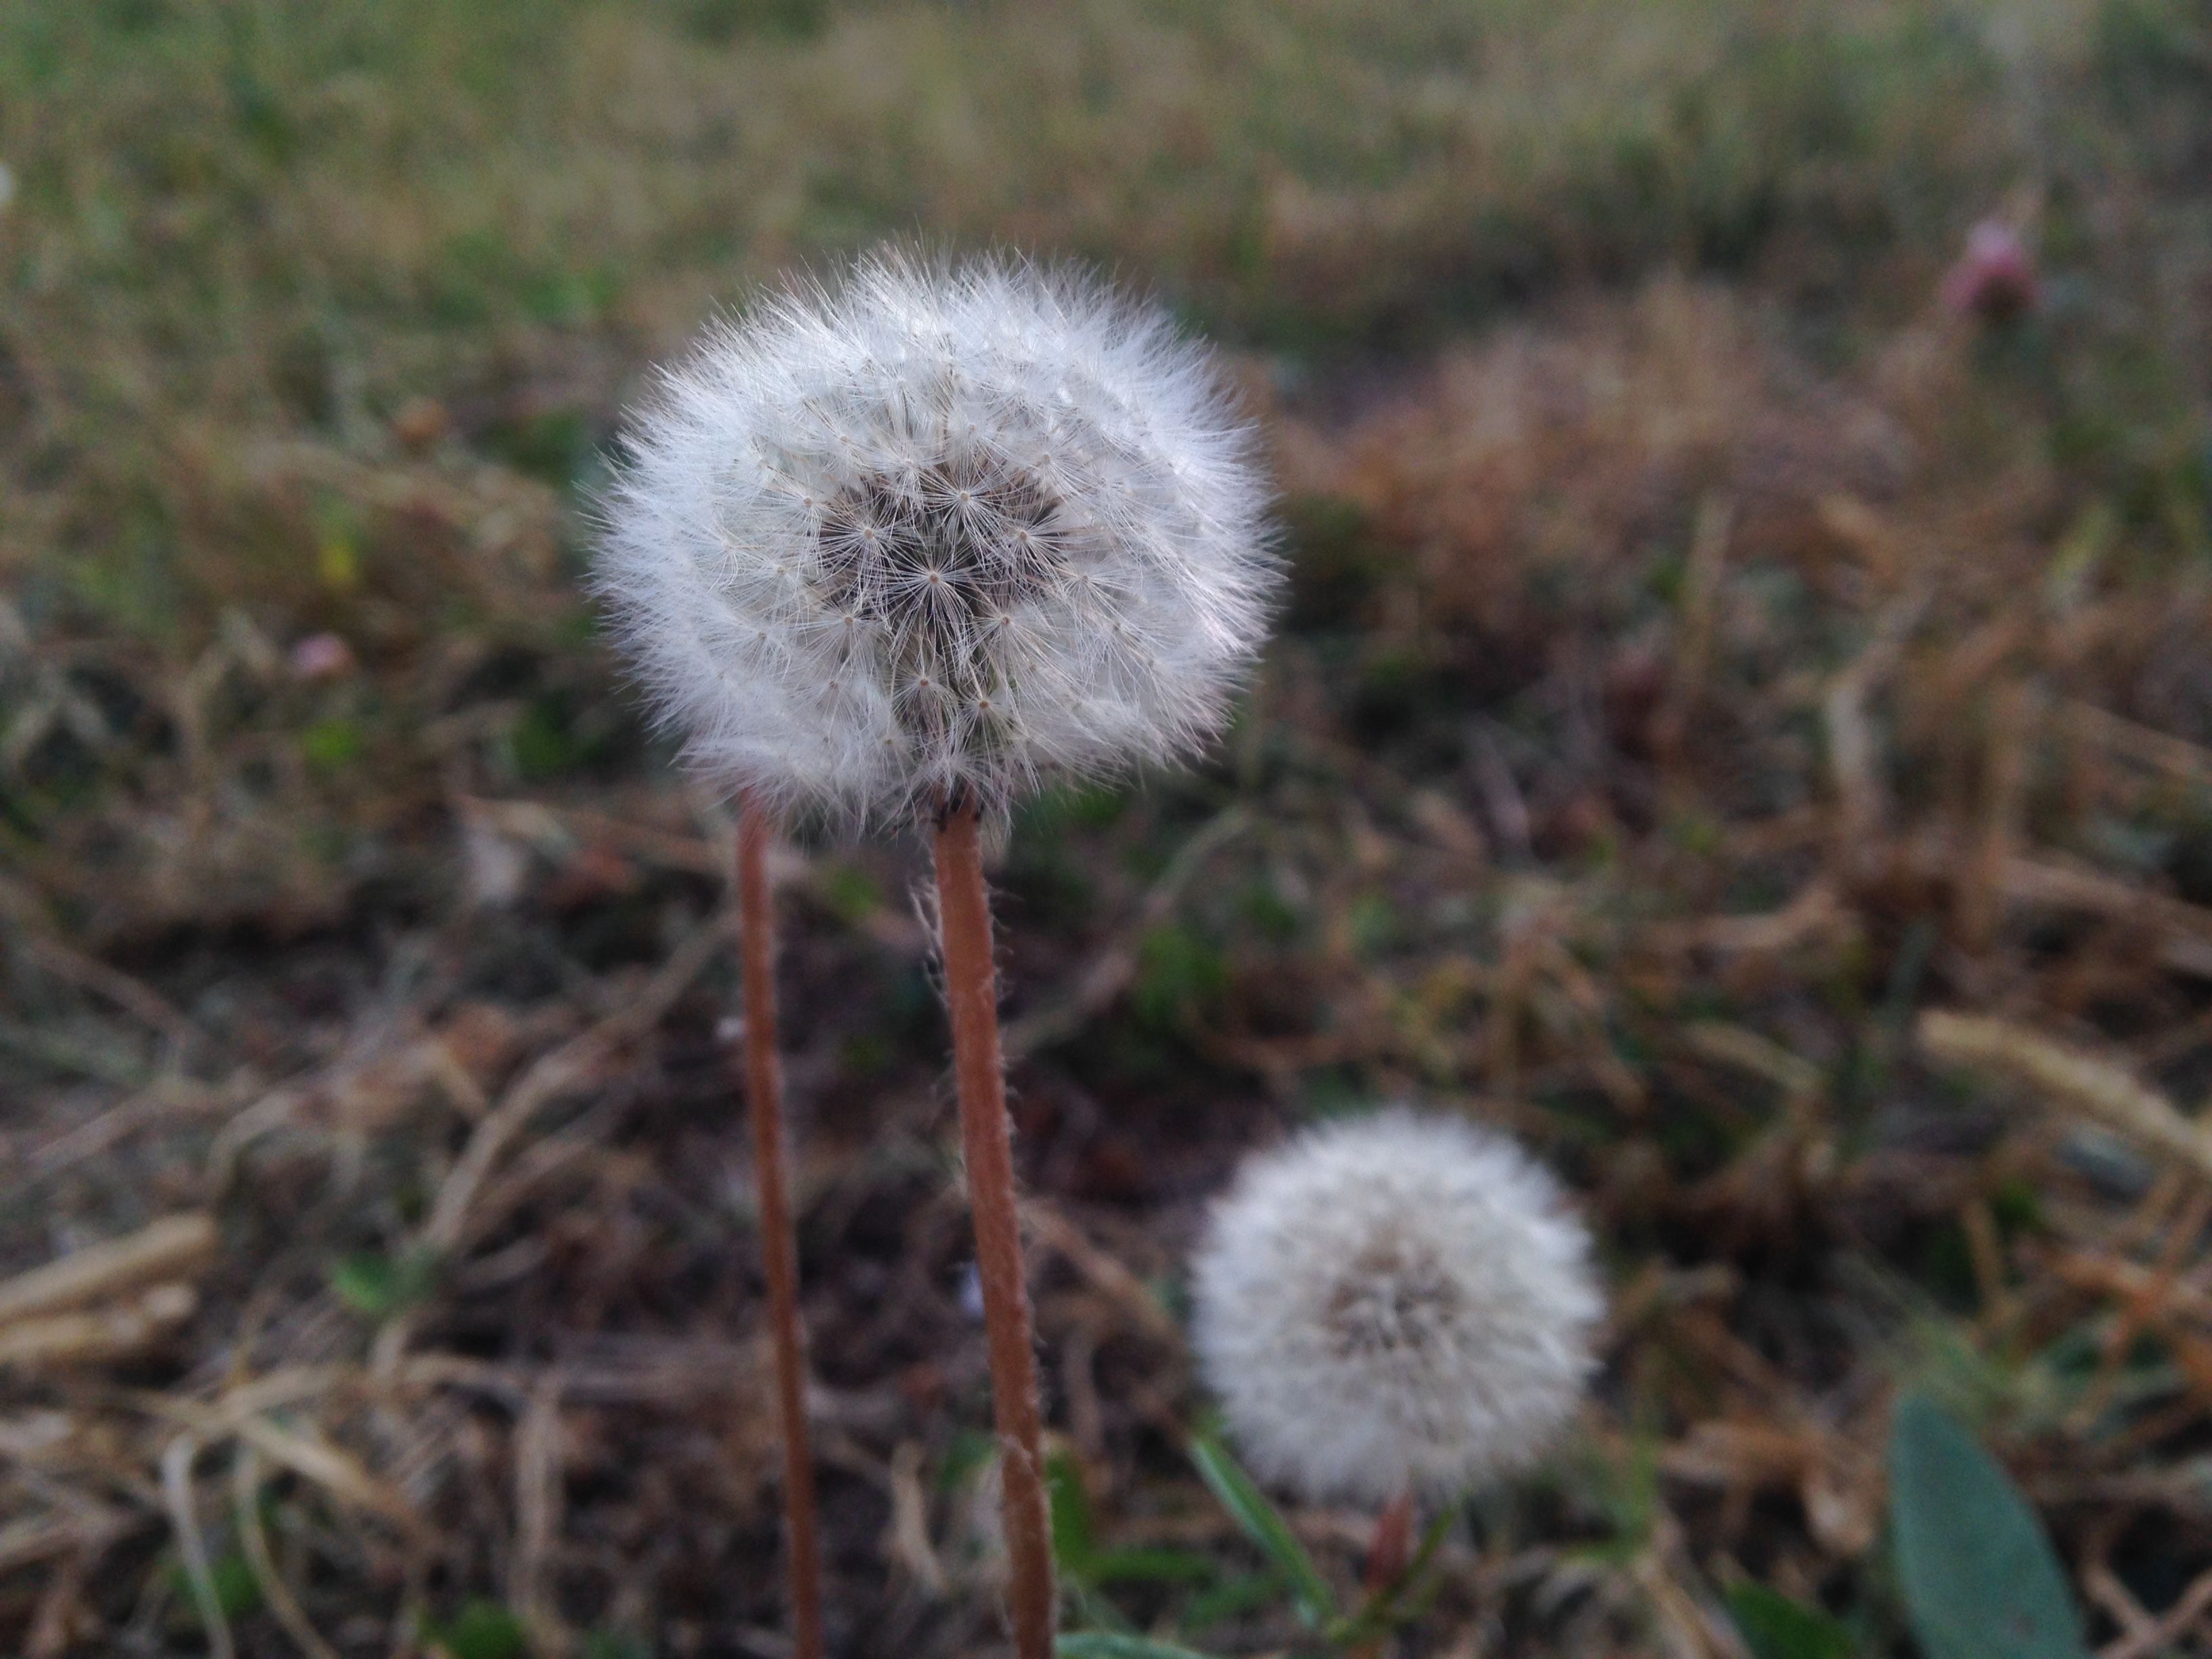 Pin By Iqra Mukhtar On Close To Nature Closer To Nature Flowers Dandelion